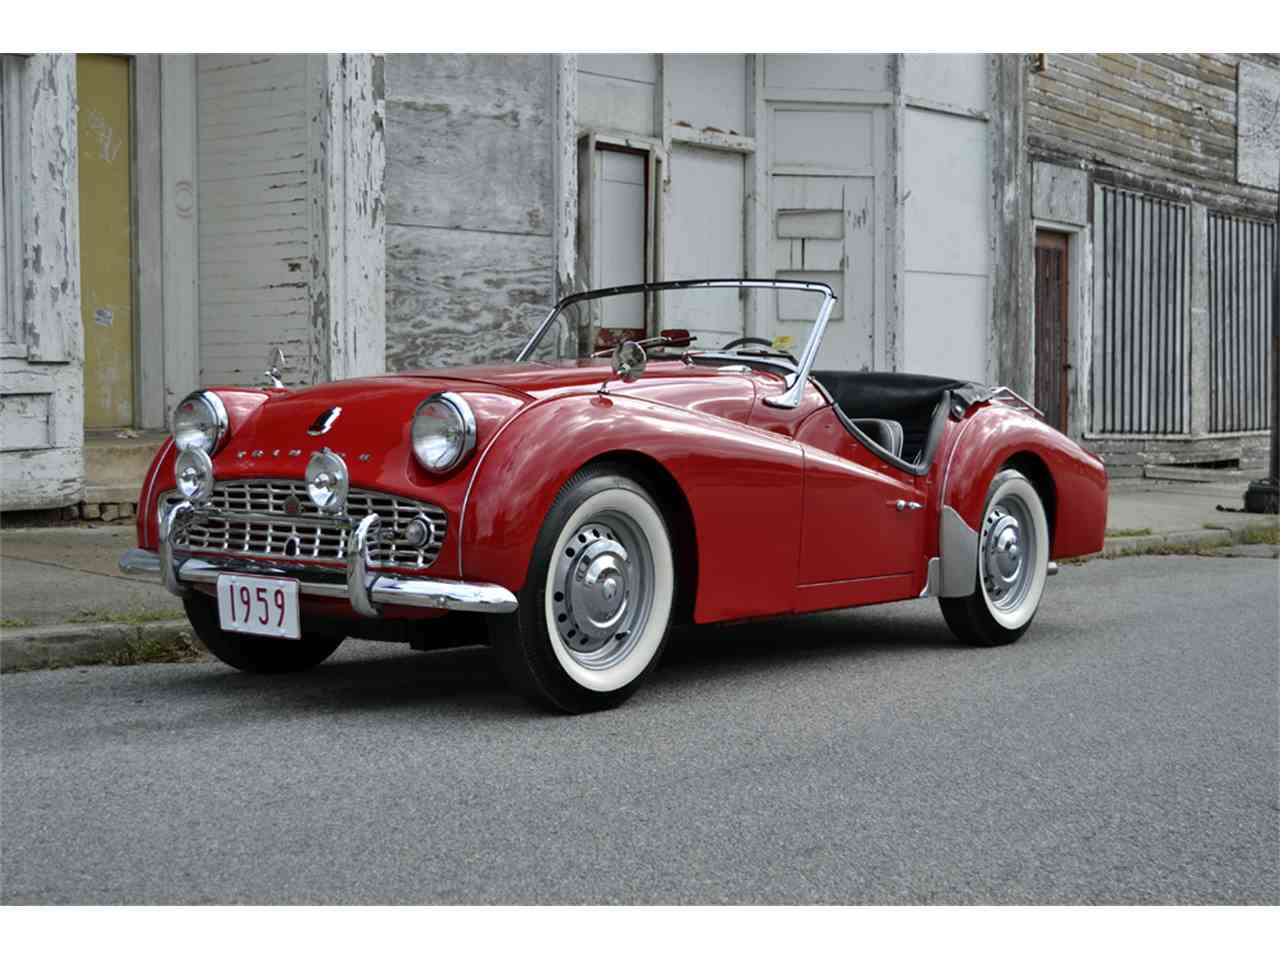 Trucks Under 5000 >> 1959 Triumph TR3 for Sale | ClassicCars.com | CC-909901